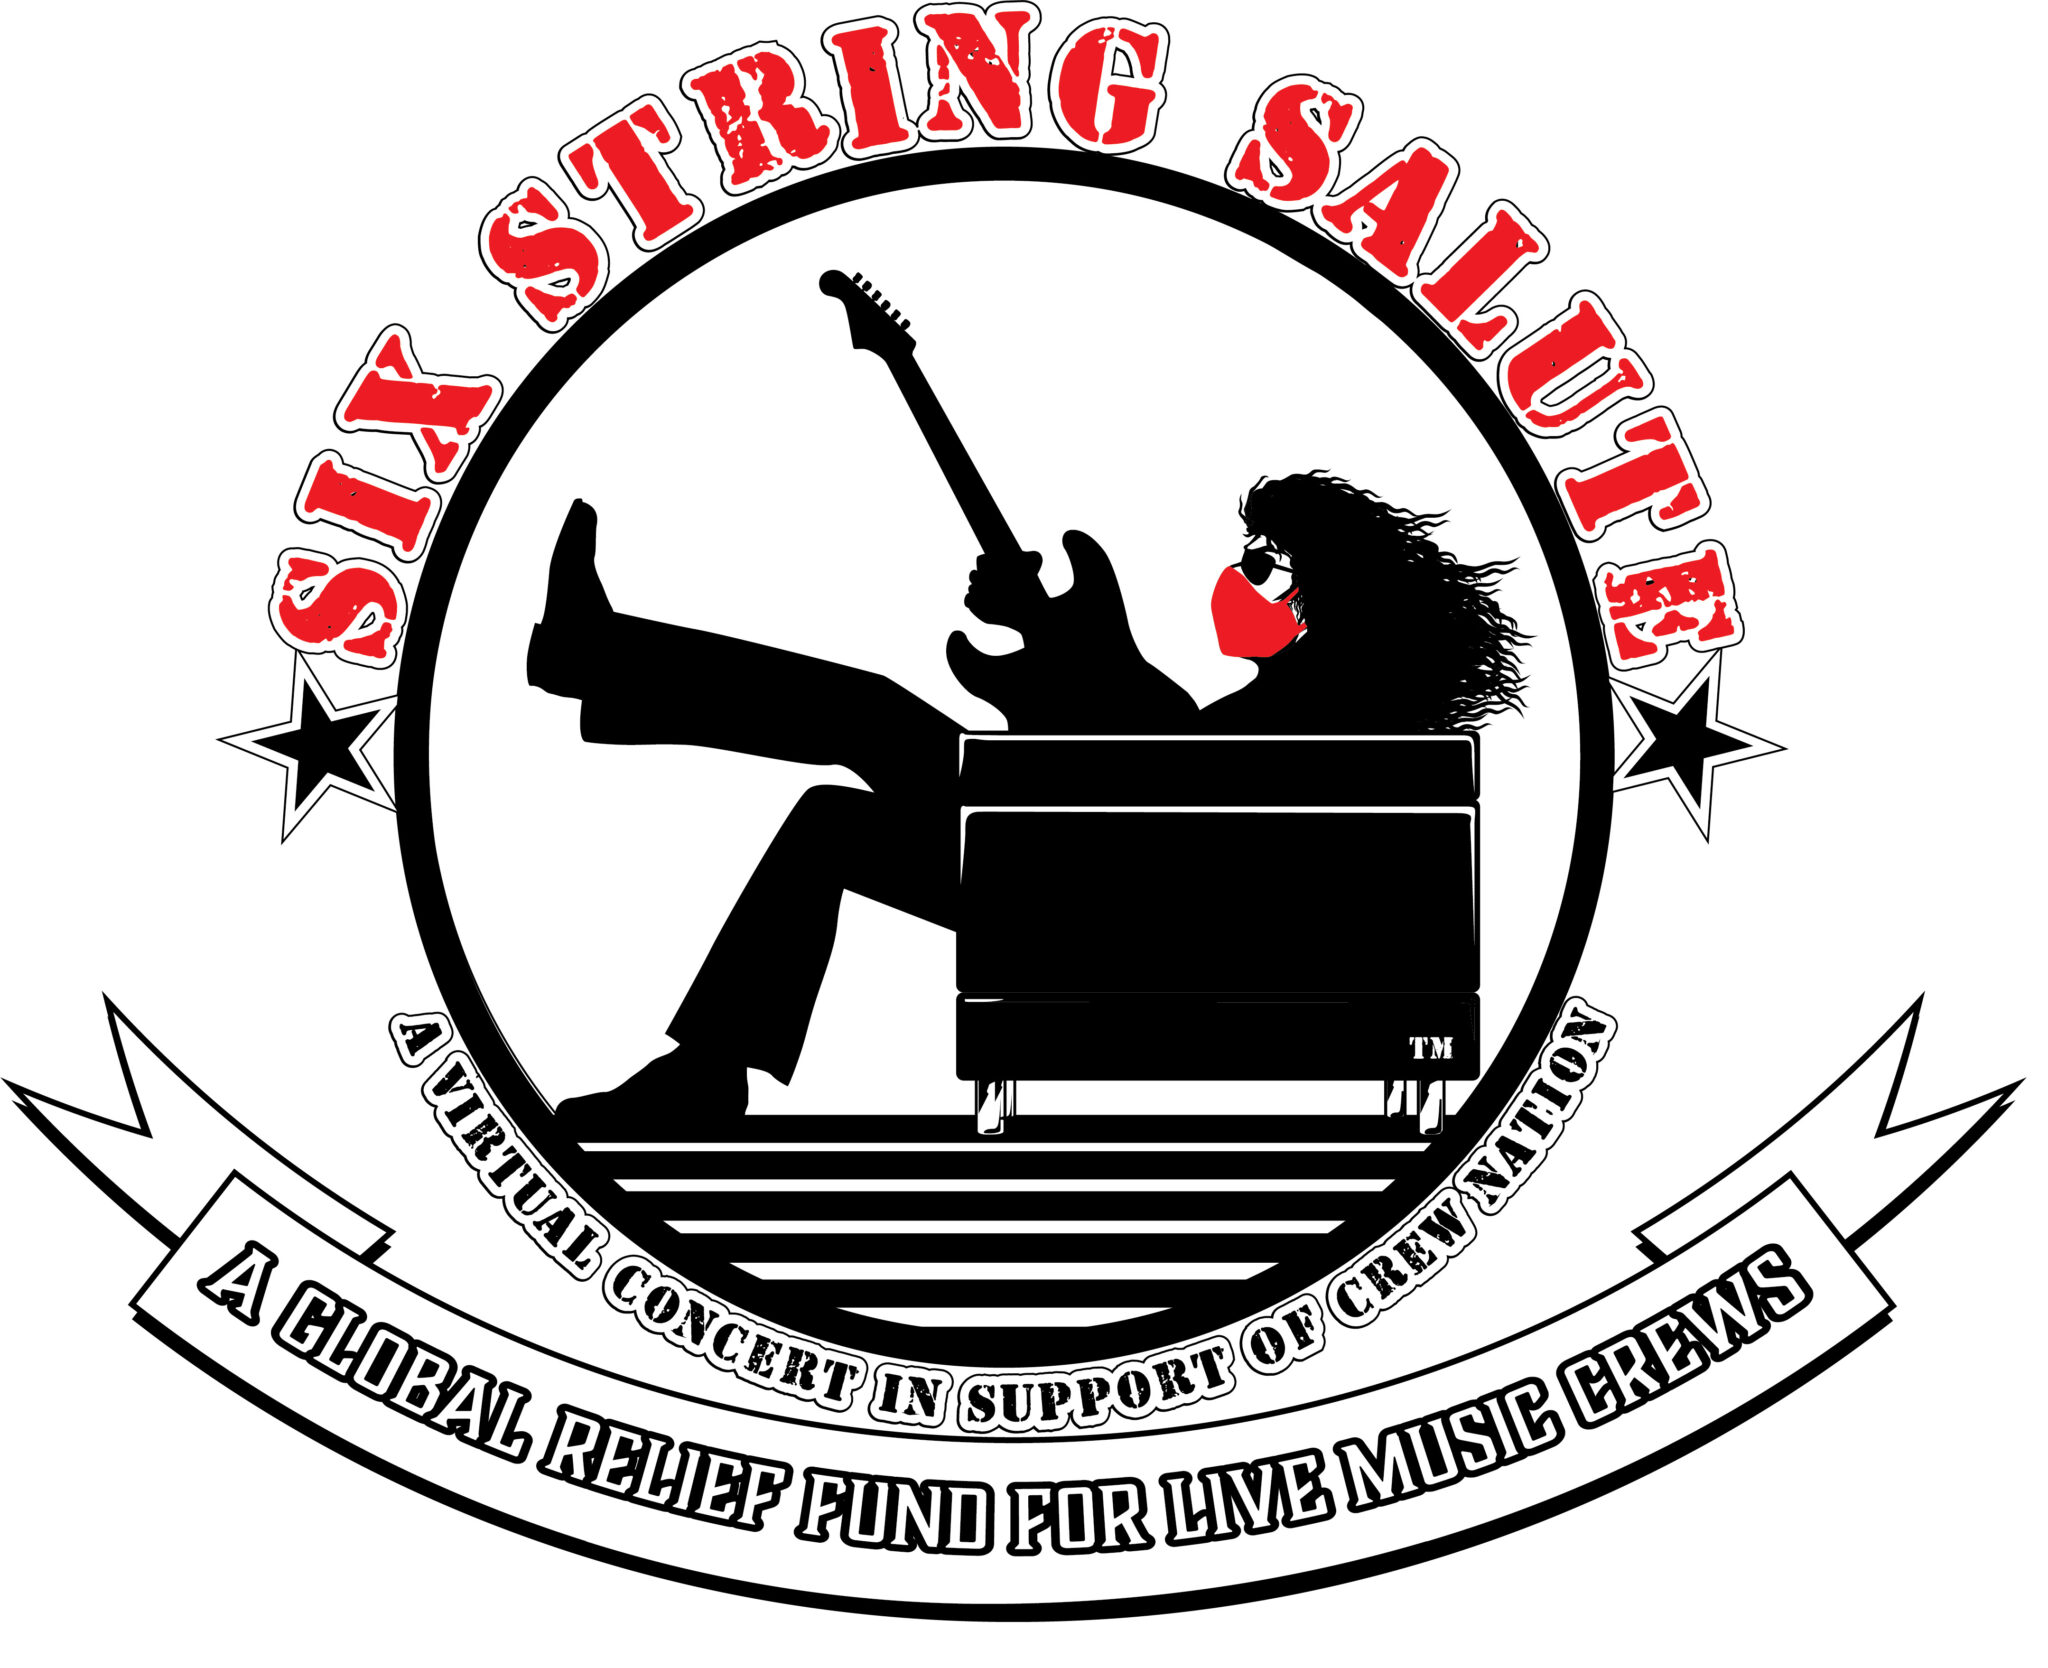 Legendary Guitarists Including Satriani, Vai And Other Musicians To Participate In Six String Salute Virtual Concert!